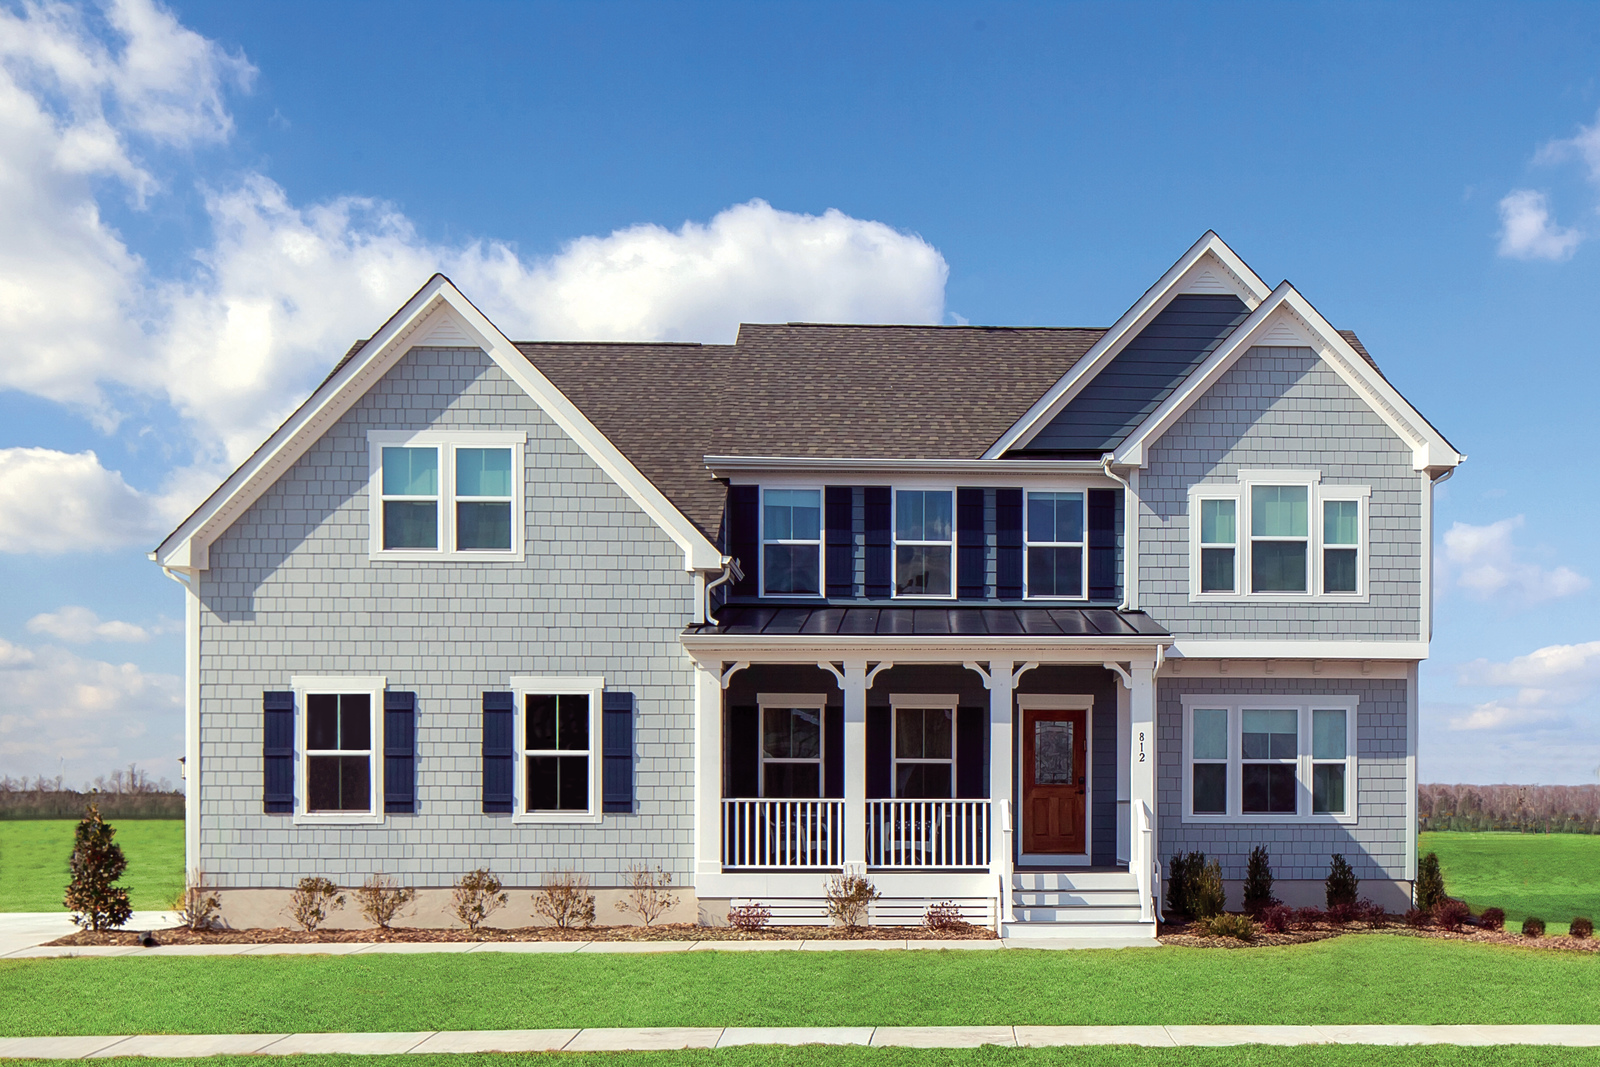 New Homes For Sale In Suffolk Va